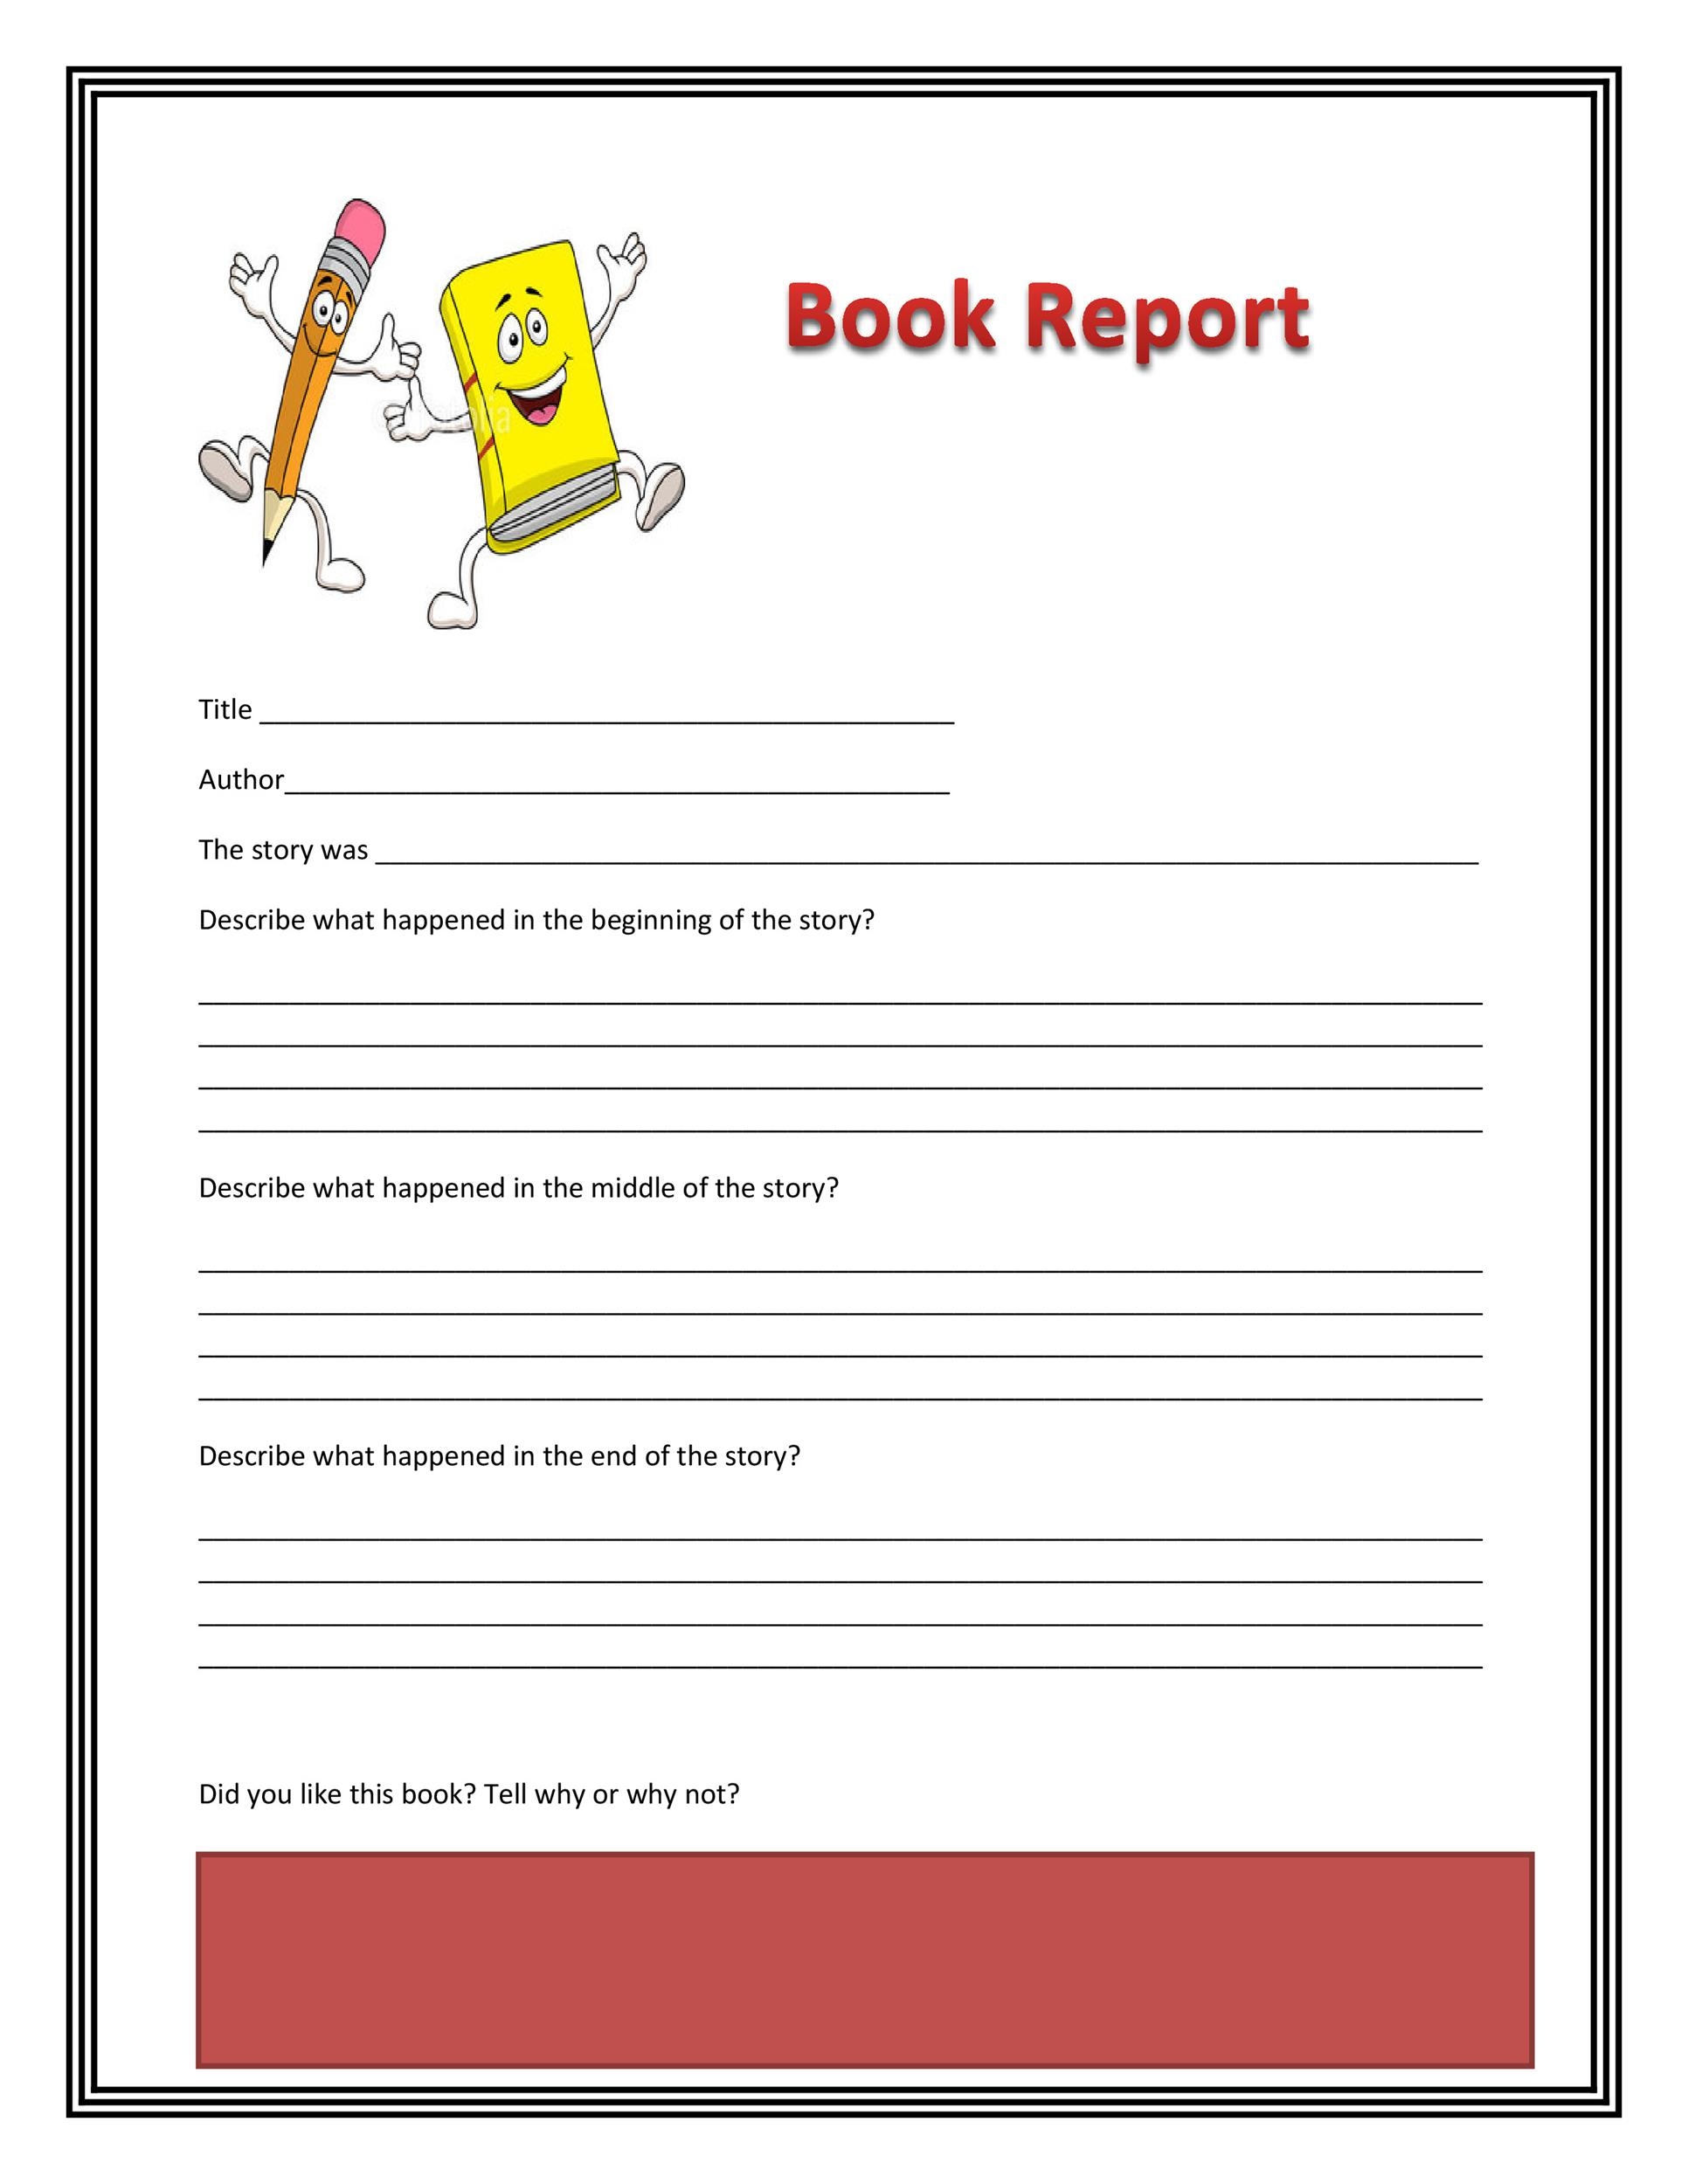 Grade 9 Book Report Template